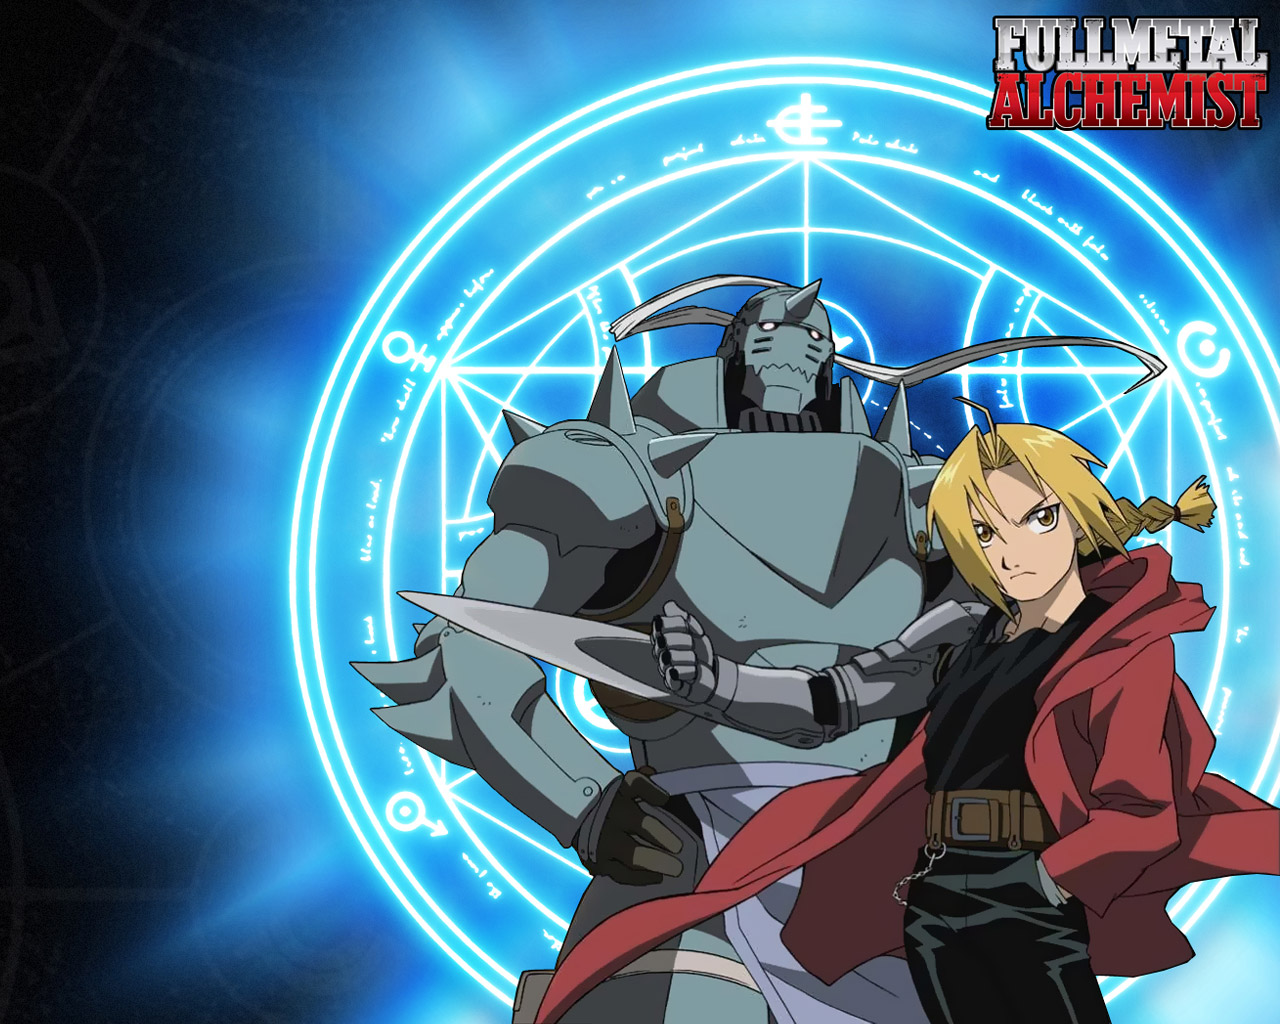 Full Metal Alchemist HD & Widescreen Wallpaper 0.330767439091216